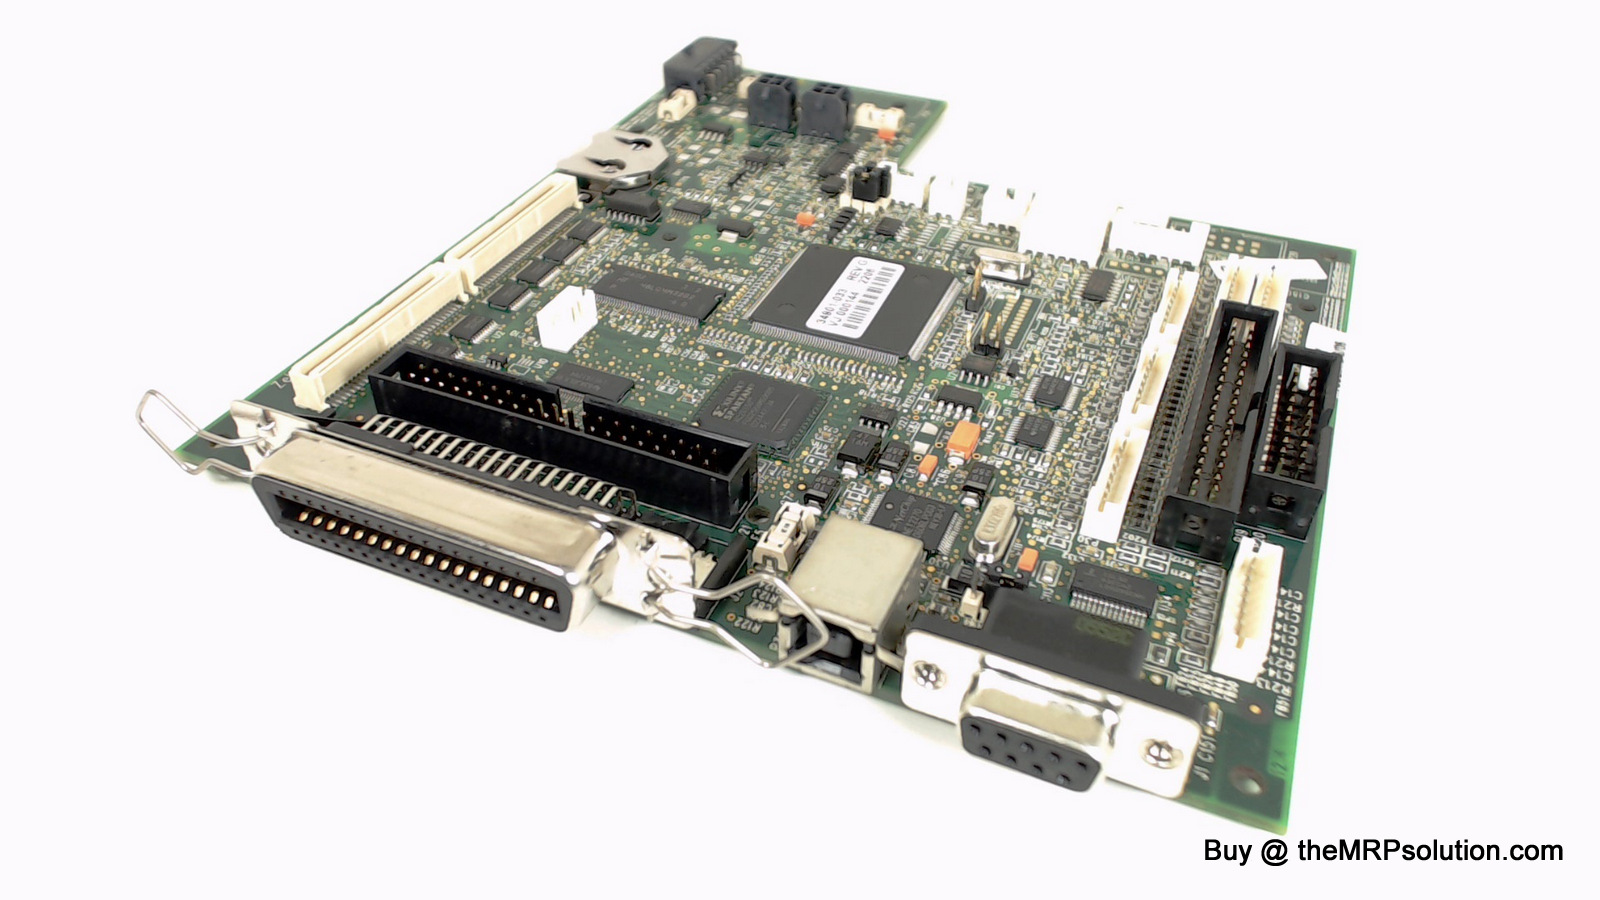 ZEBRA 34901-033 LOGIC BOARD, 64MB, 110XI III PLUS Refurbished